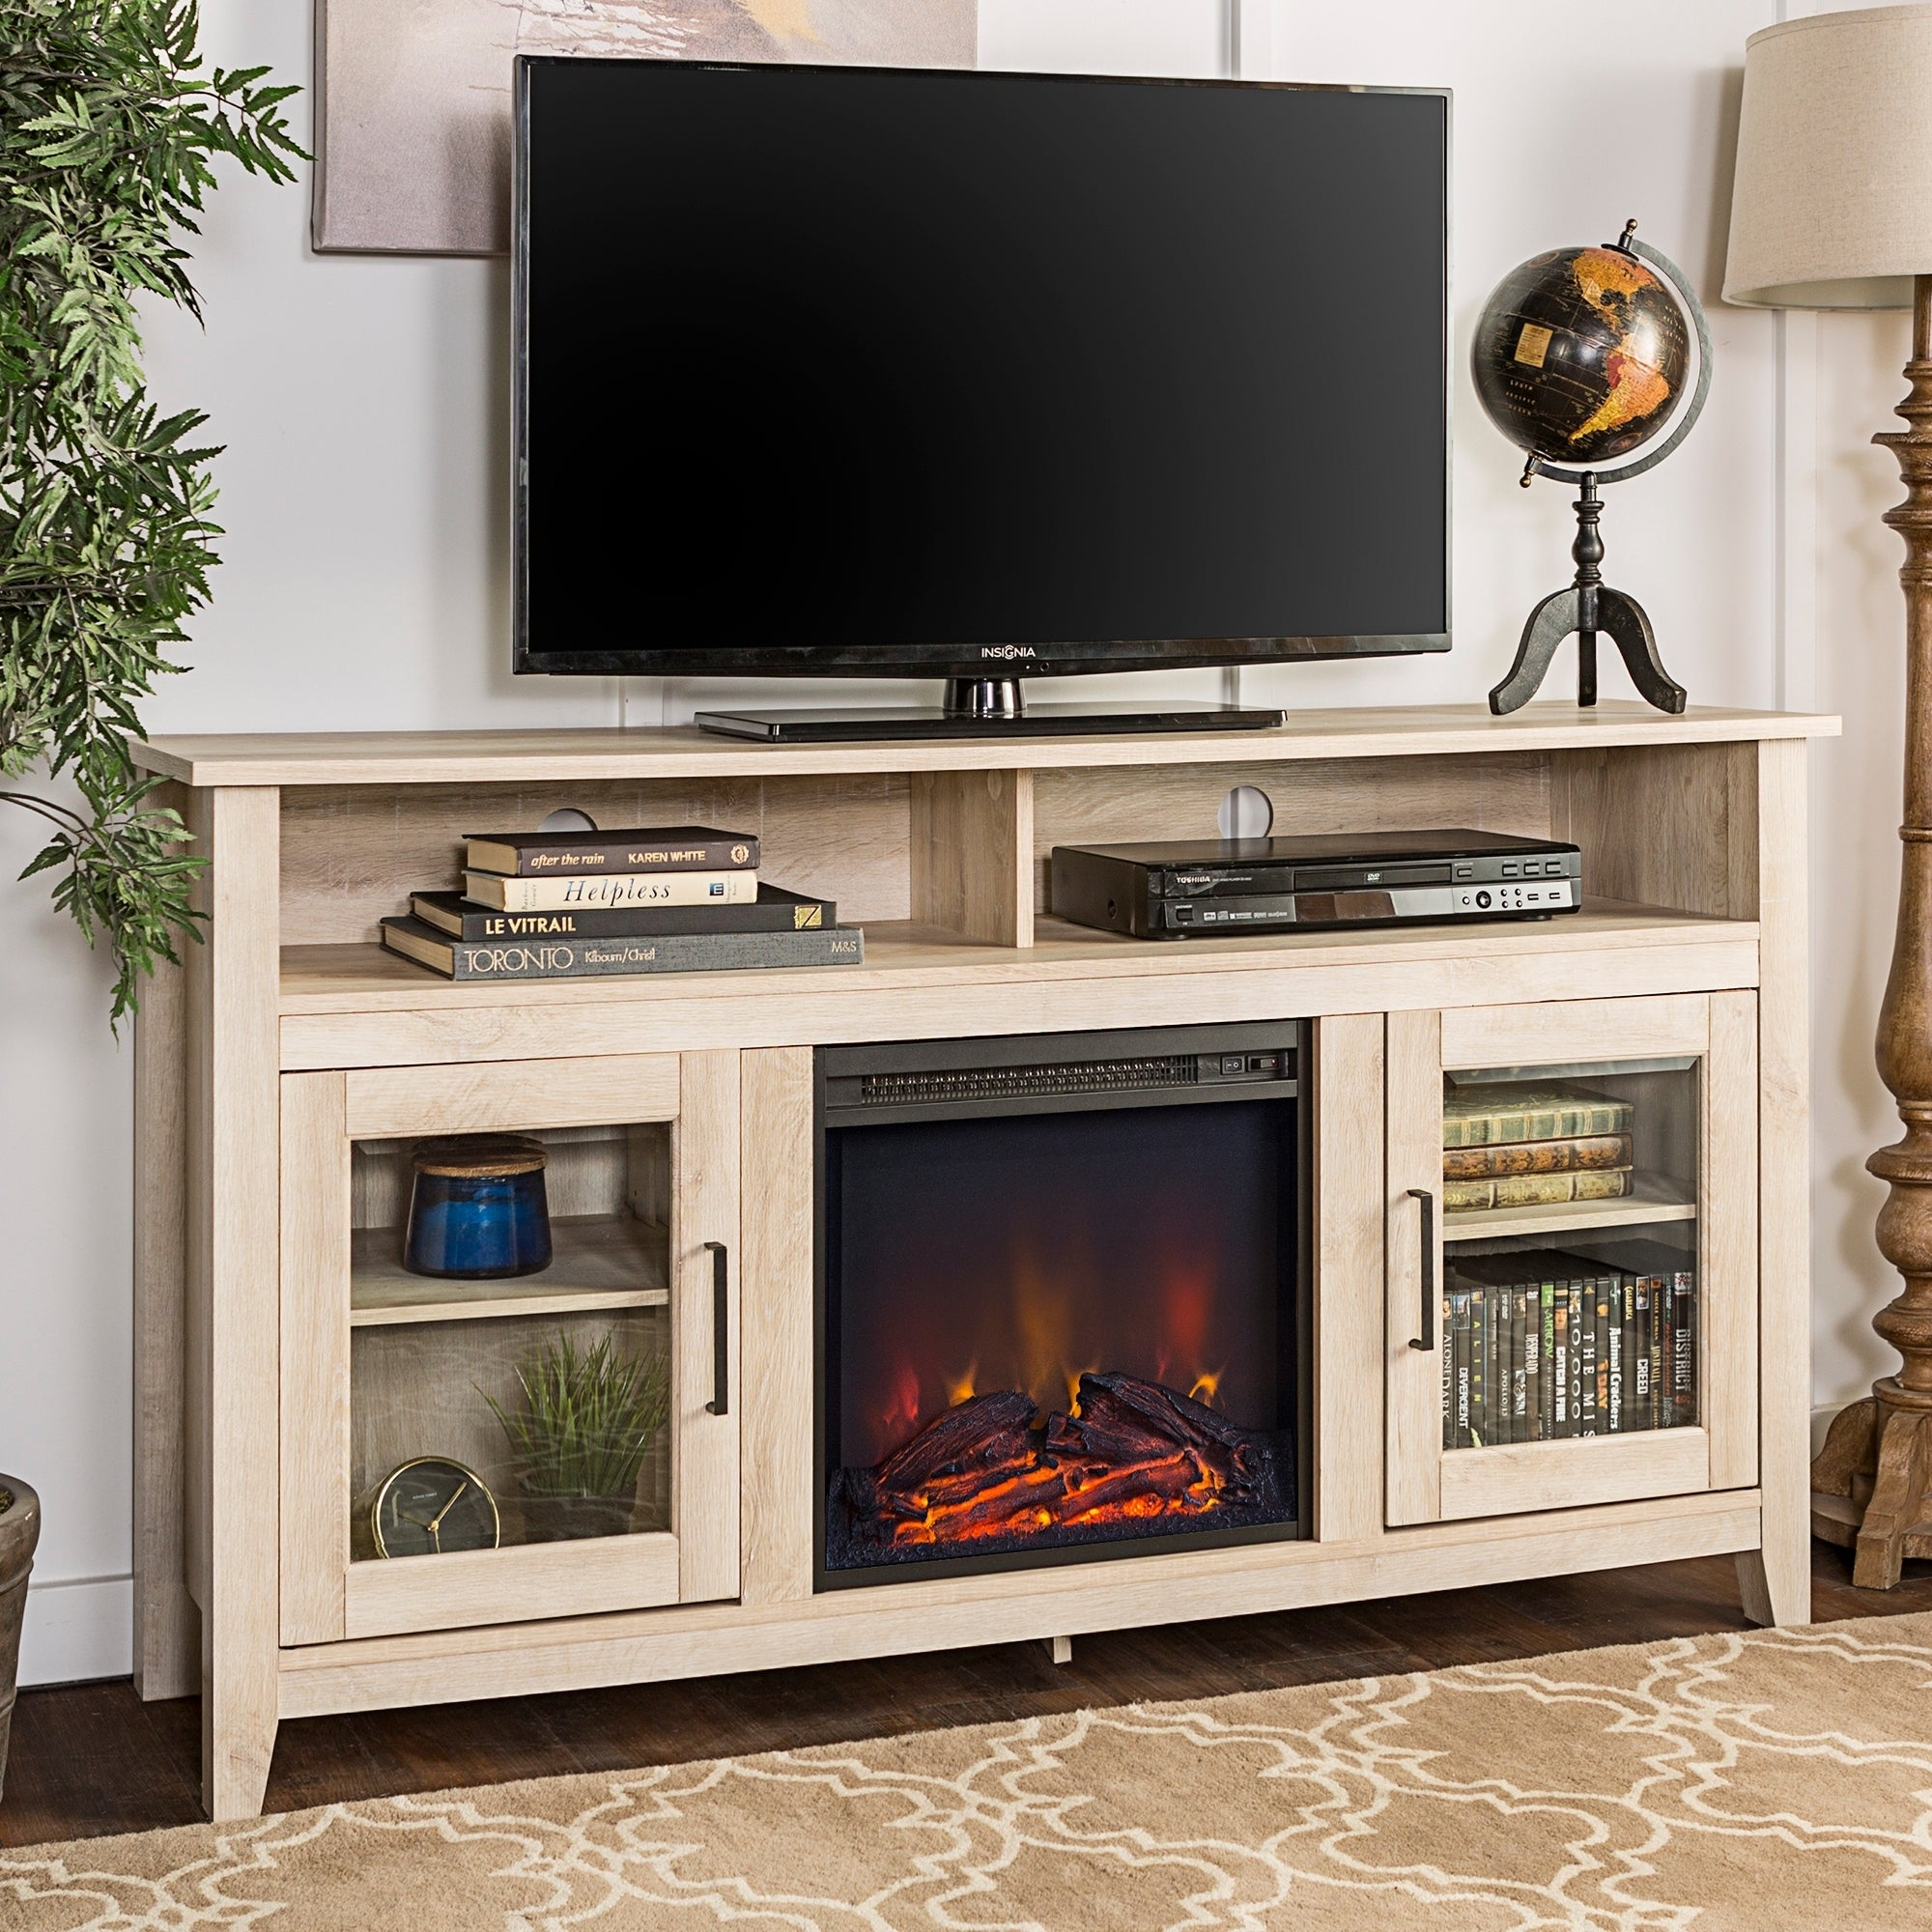 Shop 58 Highboy Fireplace Tv Stand Console 58 X 16 X 32h Free